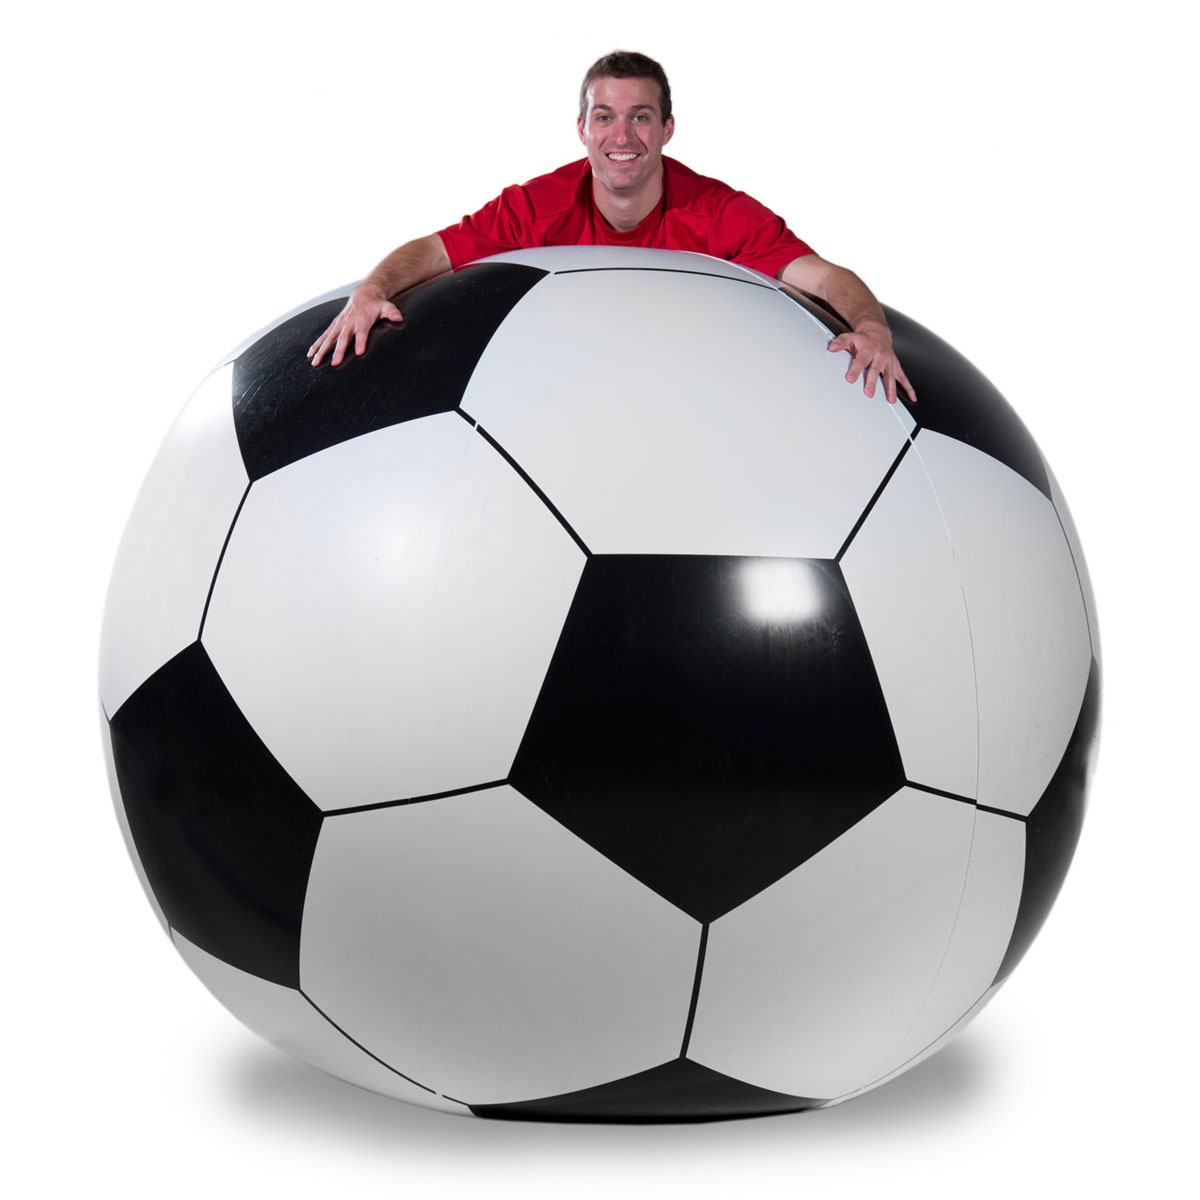 Soccer: Massive 6' Inflatable Soccer Ball